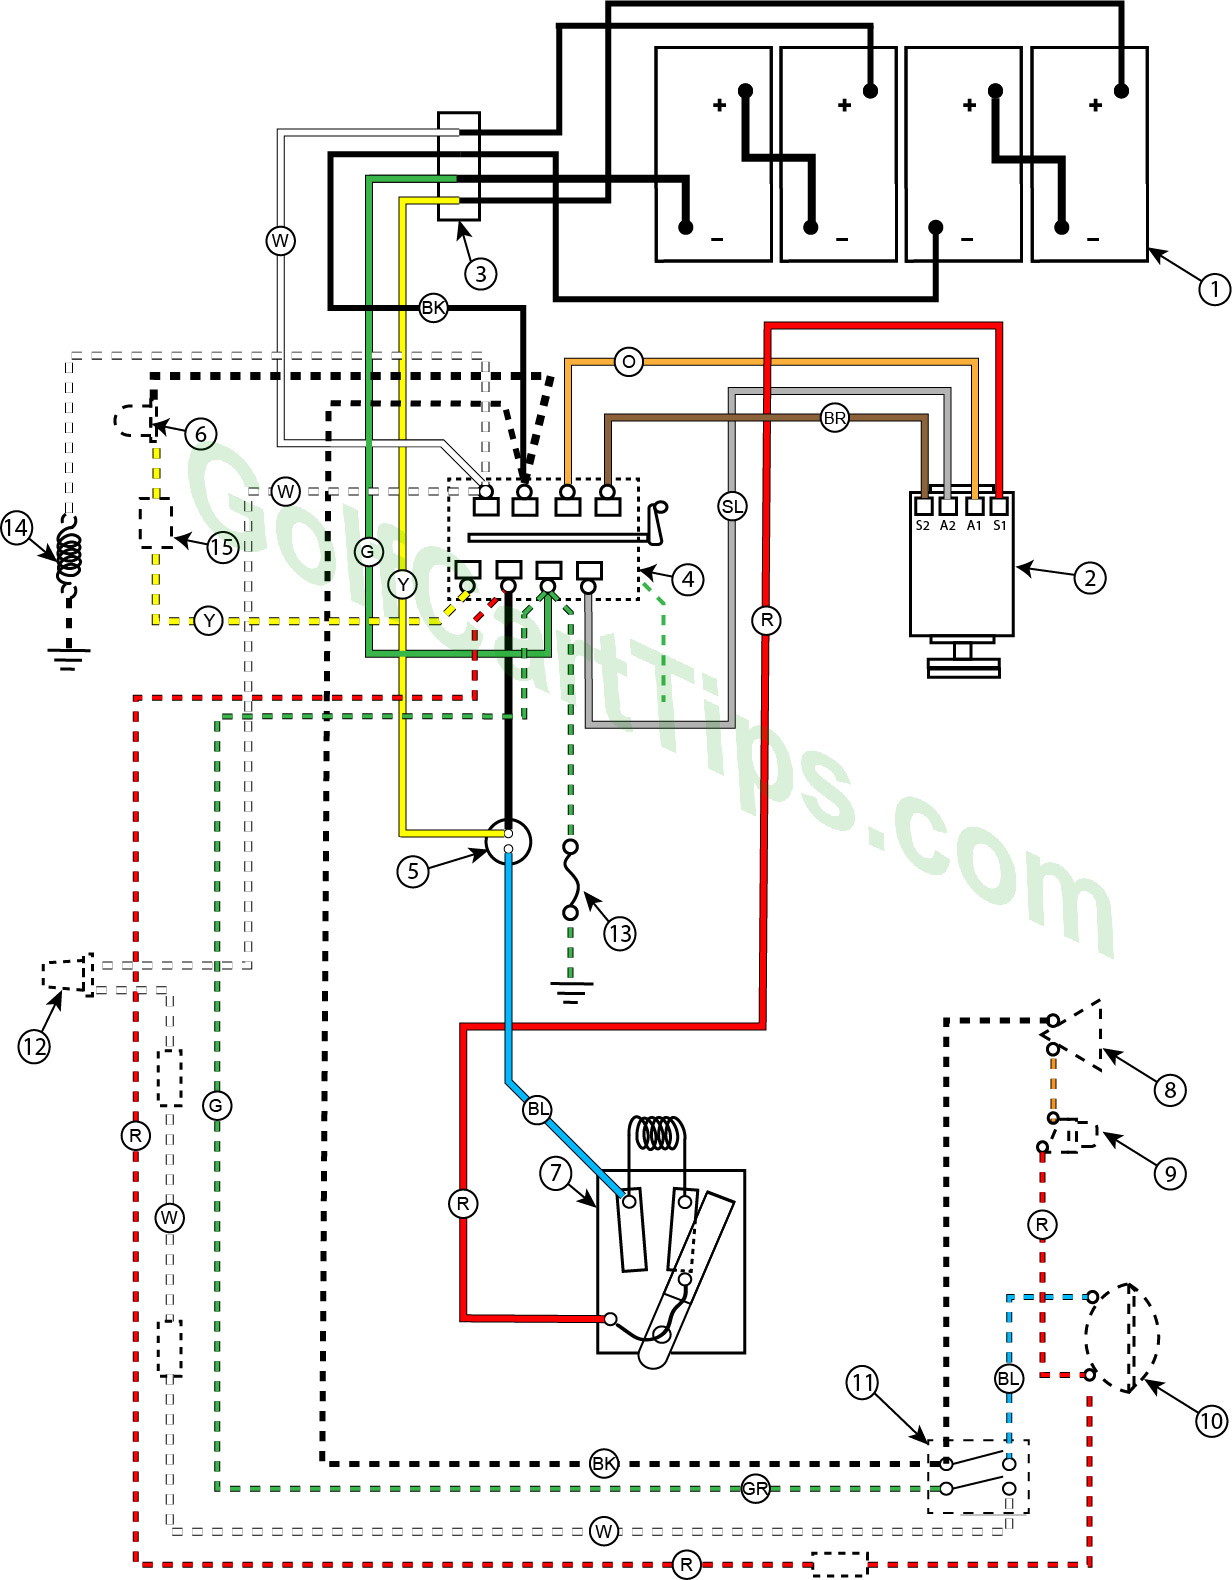 cushman 24 volt wiring diagram wiring diagram for you wiring diagram 48 volt cushman commander wiring diagram paper cushman 24 volt wiring diagram